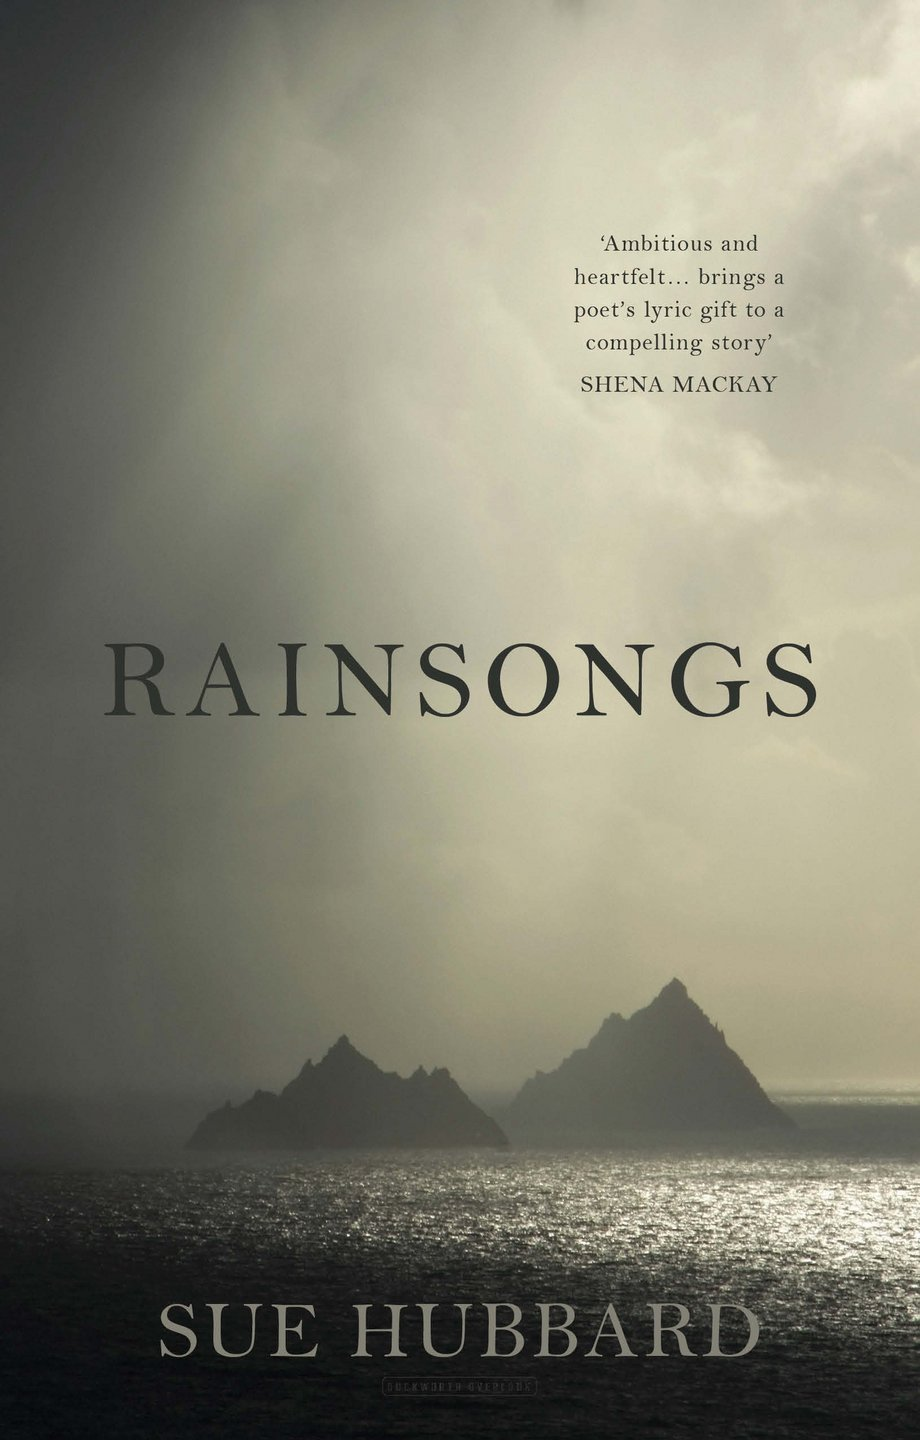 Sue Hubbard Rainsongs books